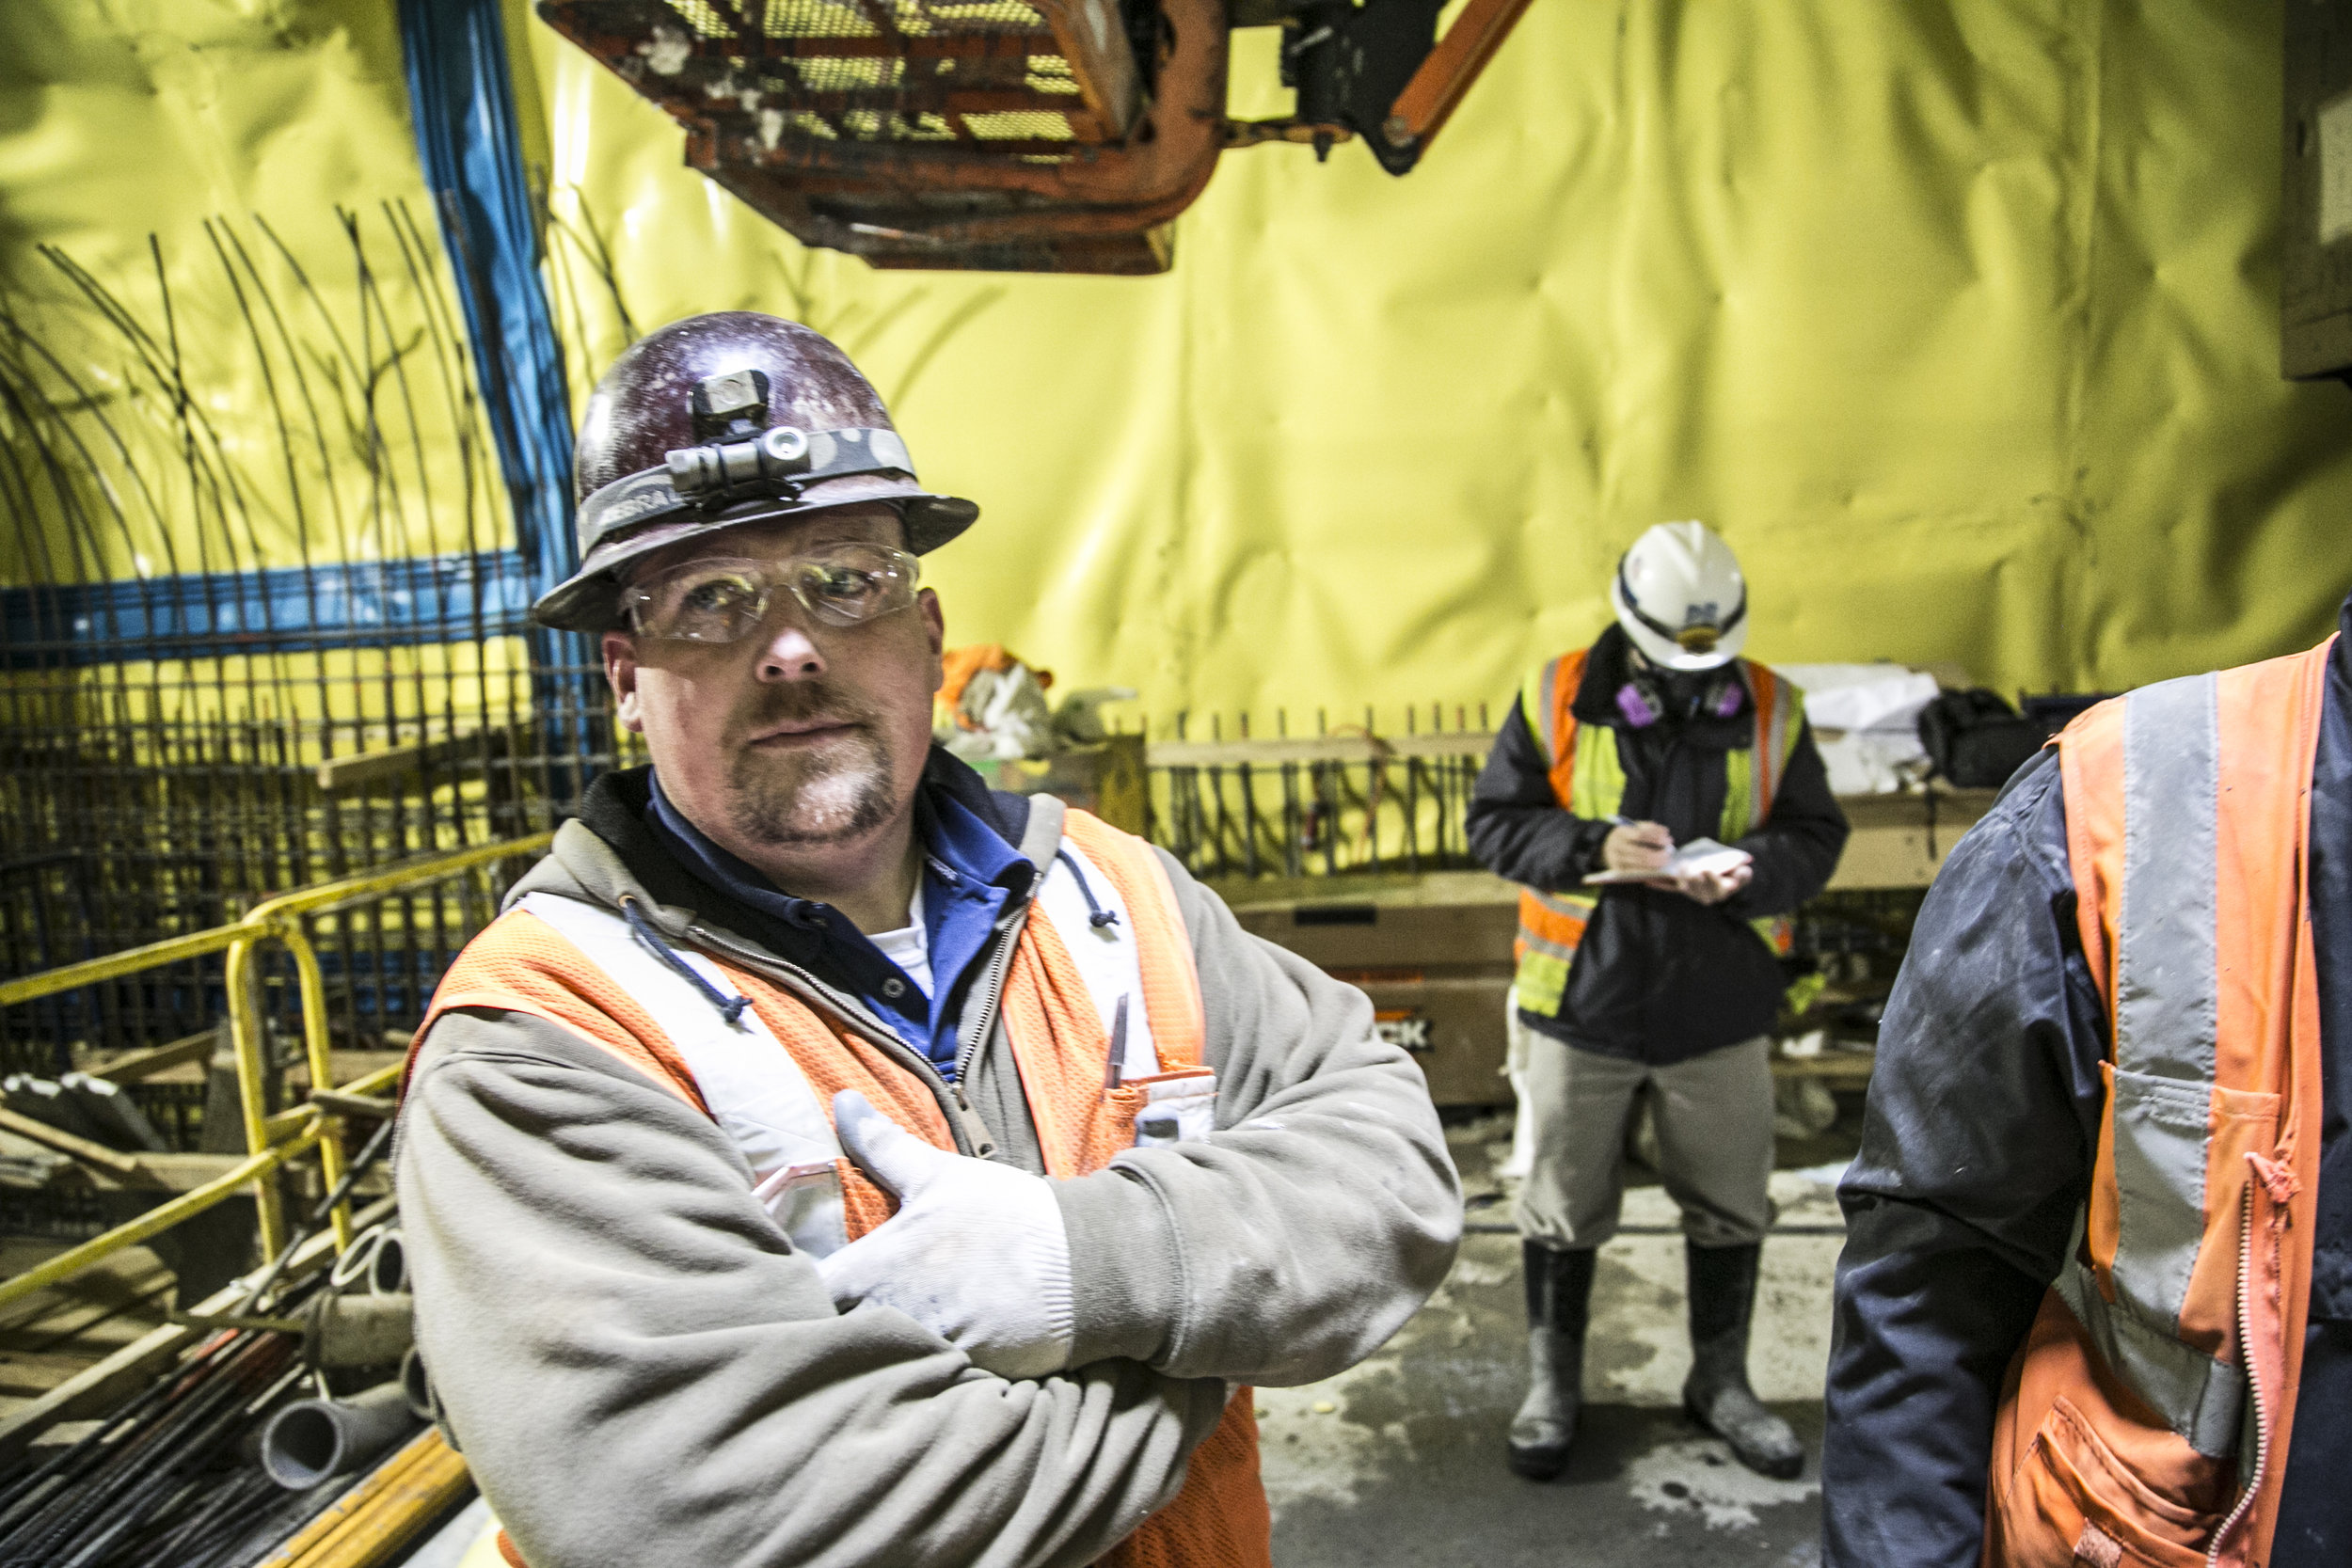 2nd avenue tunnel worker construction Industrial photography by corporate photographer Michael Benabib.jpg